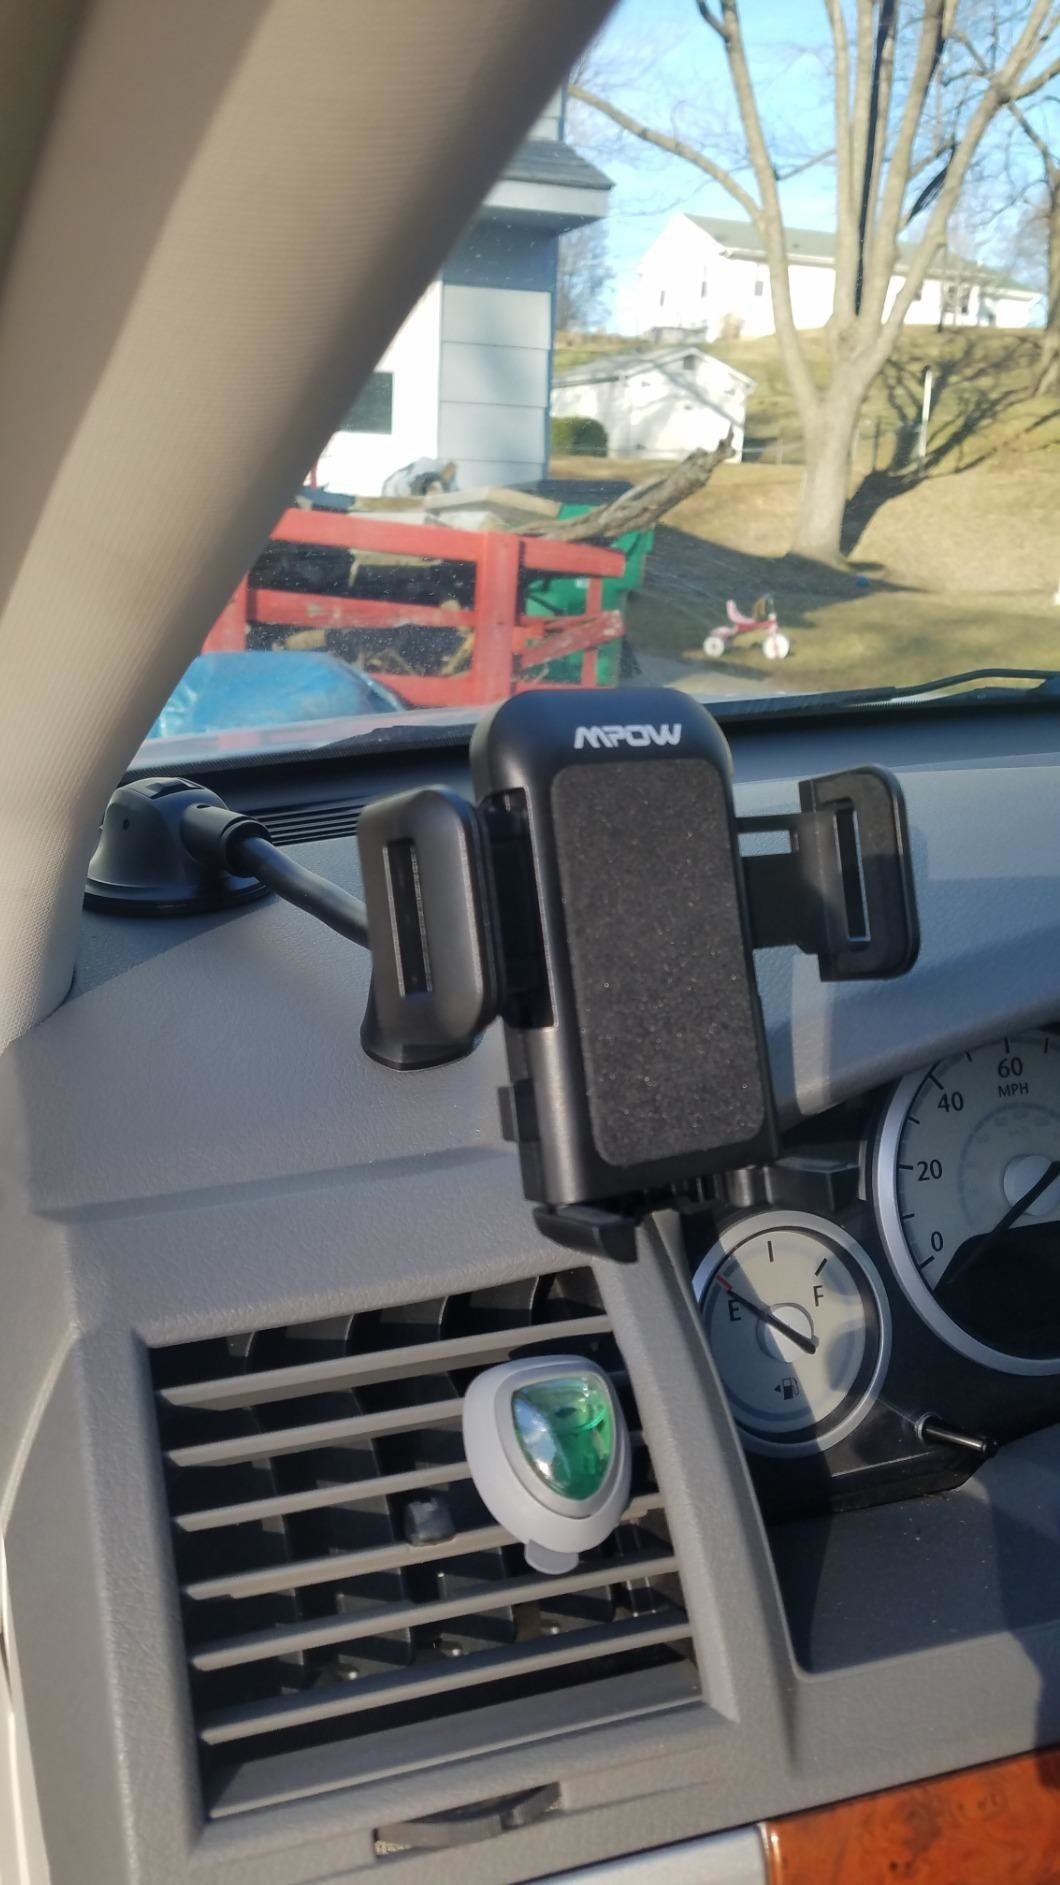 the phone holder attached to a dashboard